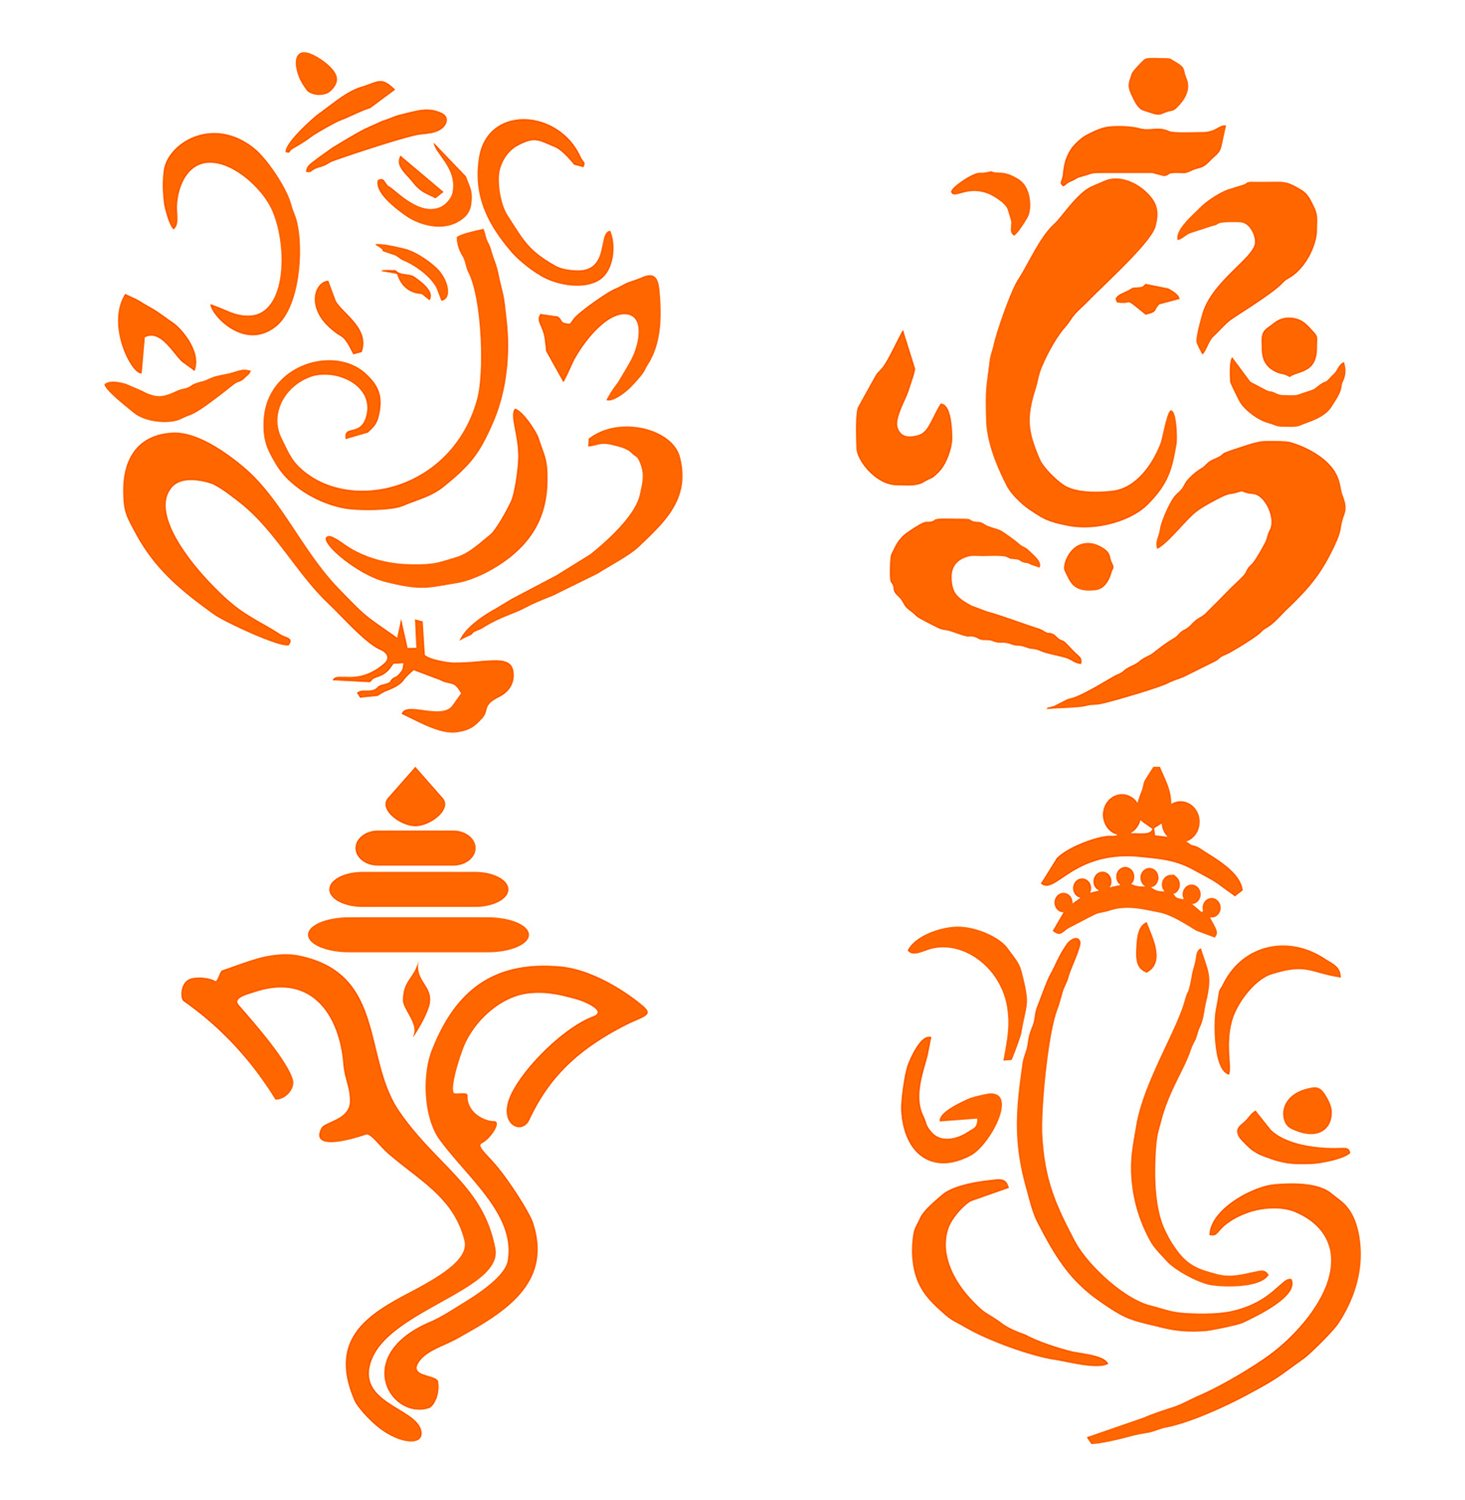 Idesign orange lord ganesh sticker for car scooter and bikes amazon in car motorbike